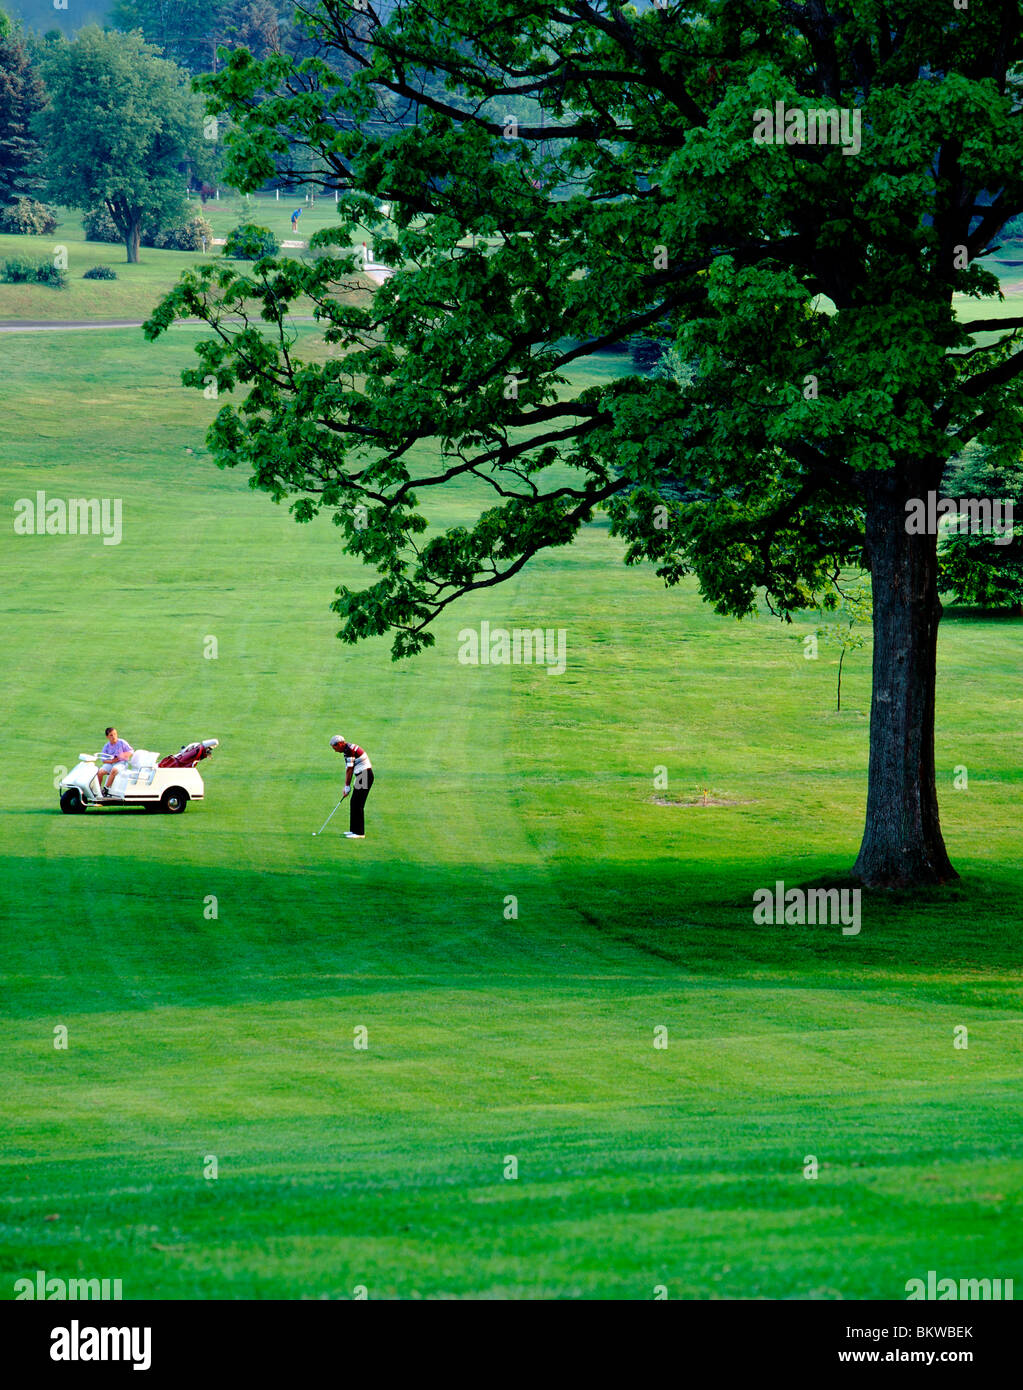 Lone golfer on the fairway, Foxburg Golf Club, oldest continuously run course in the USA (1887), Clarion County - Stock Image